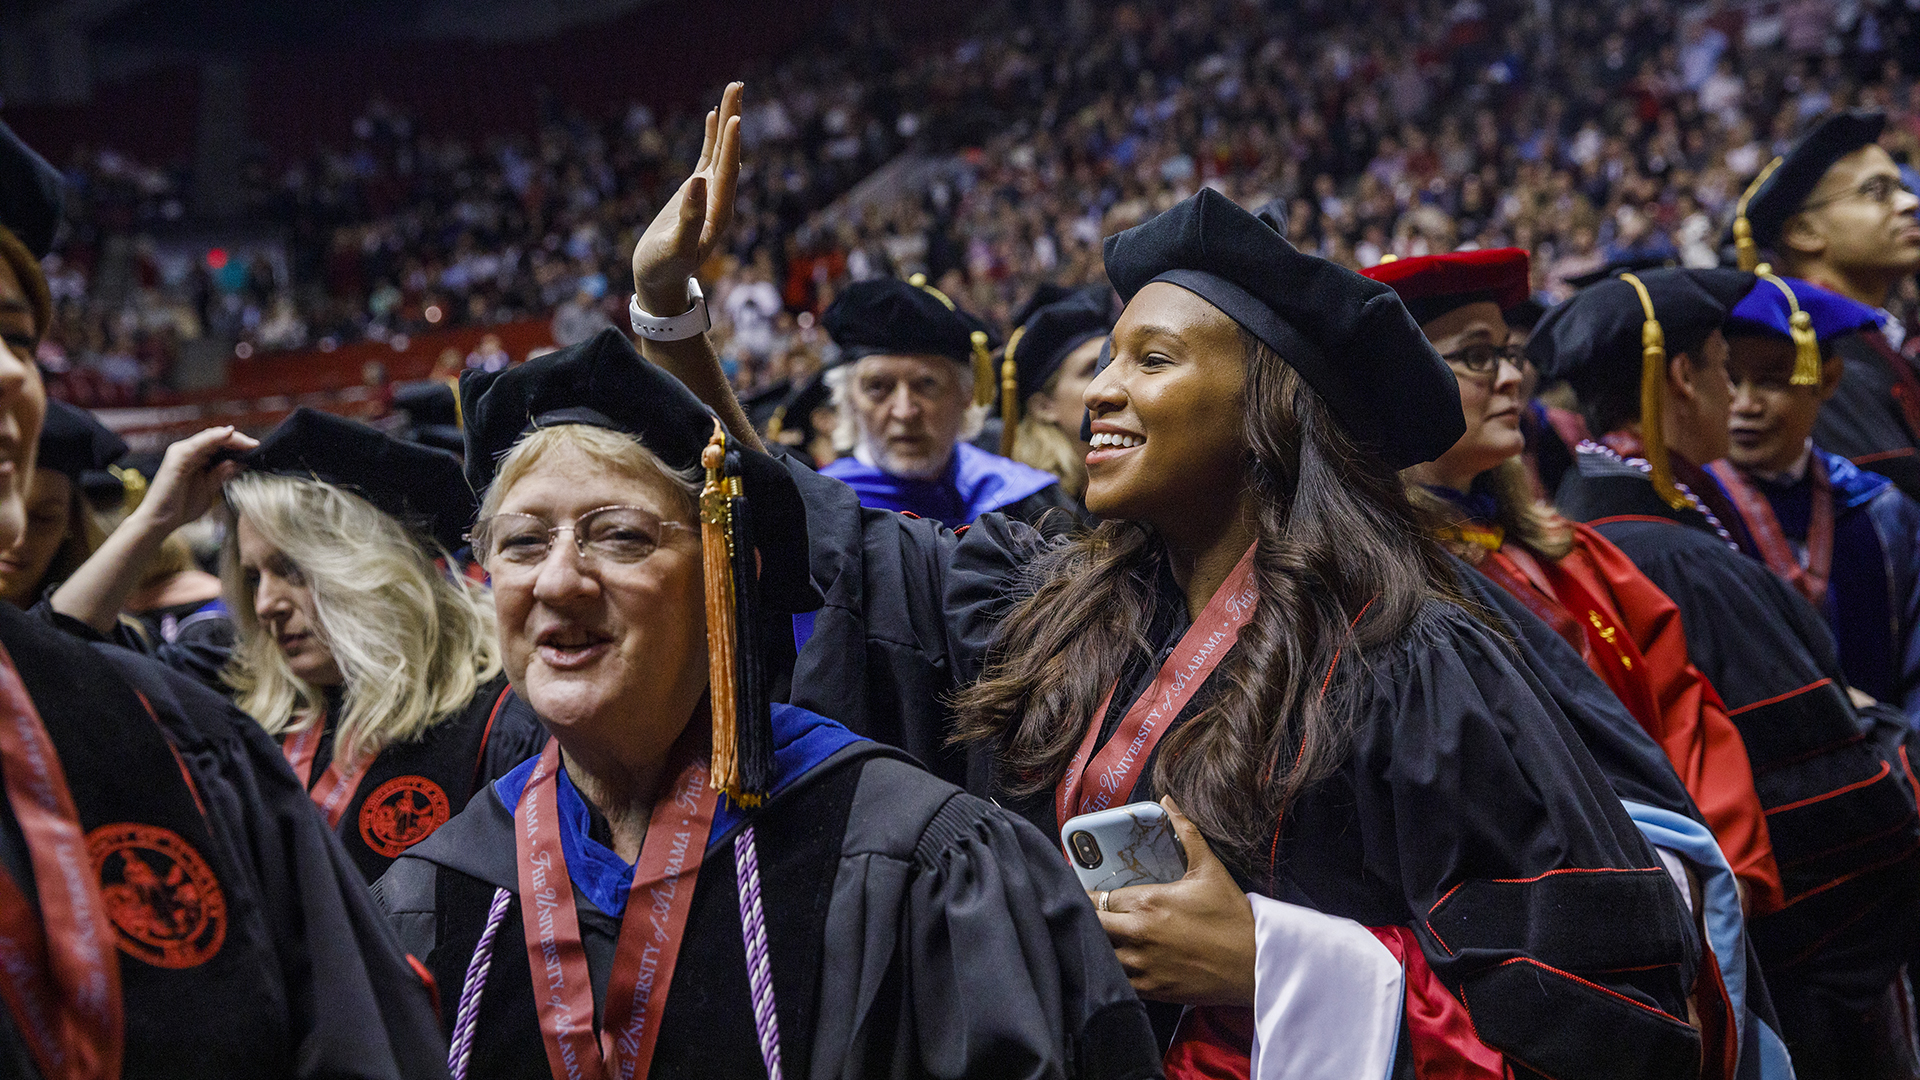 A doctoral graduate waves to family.